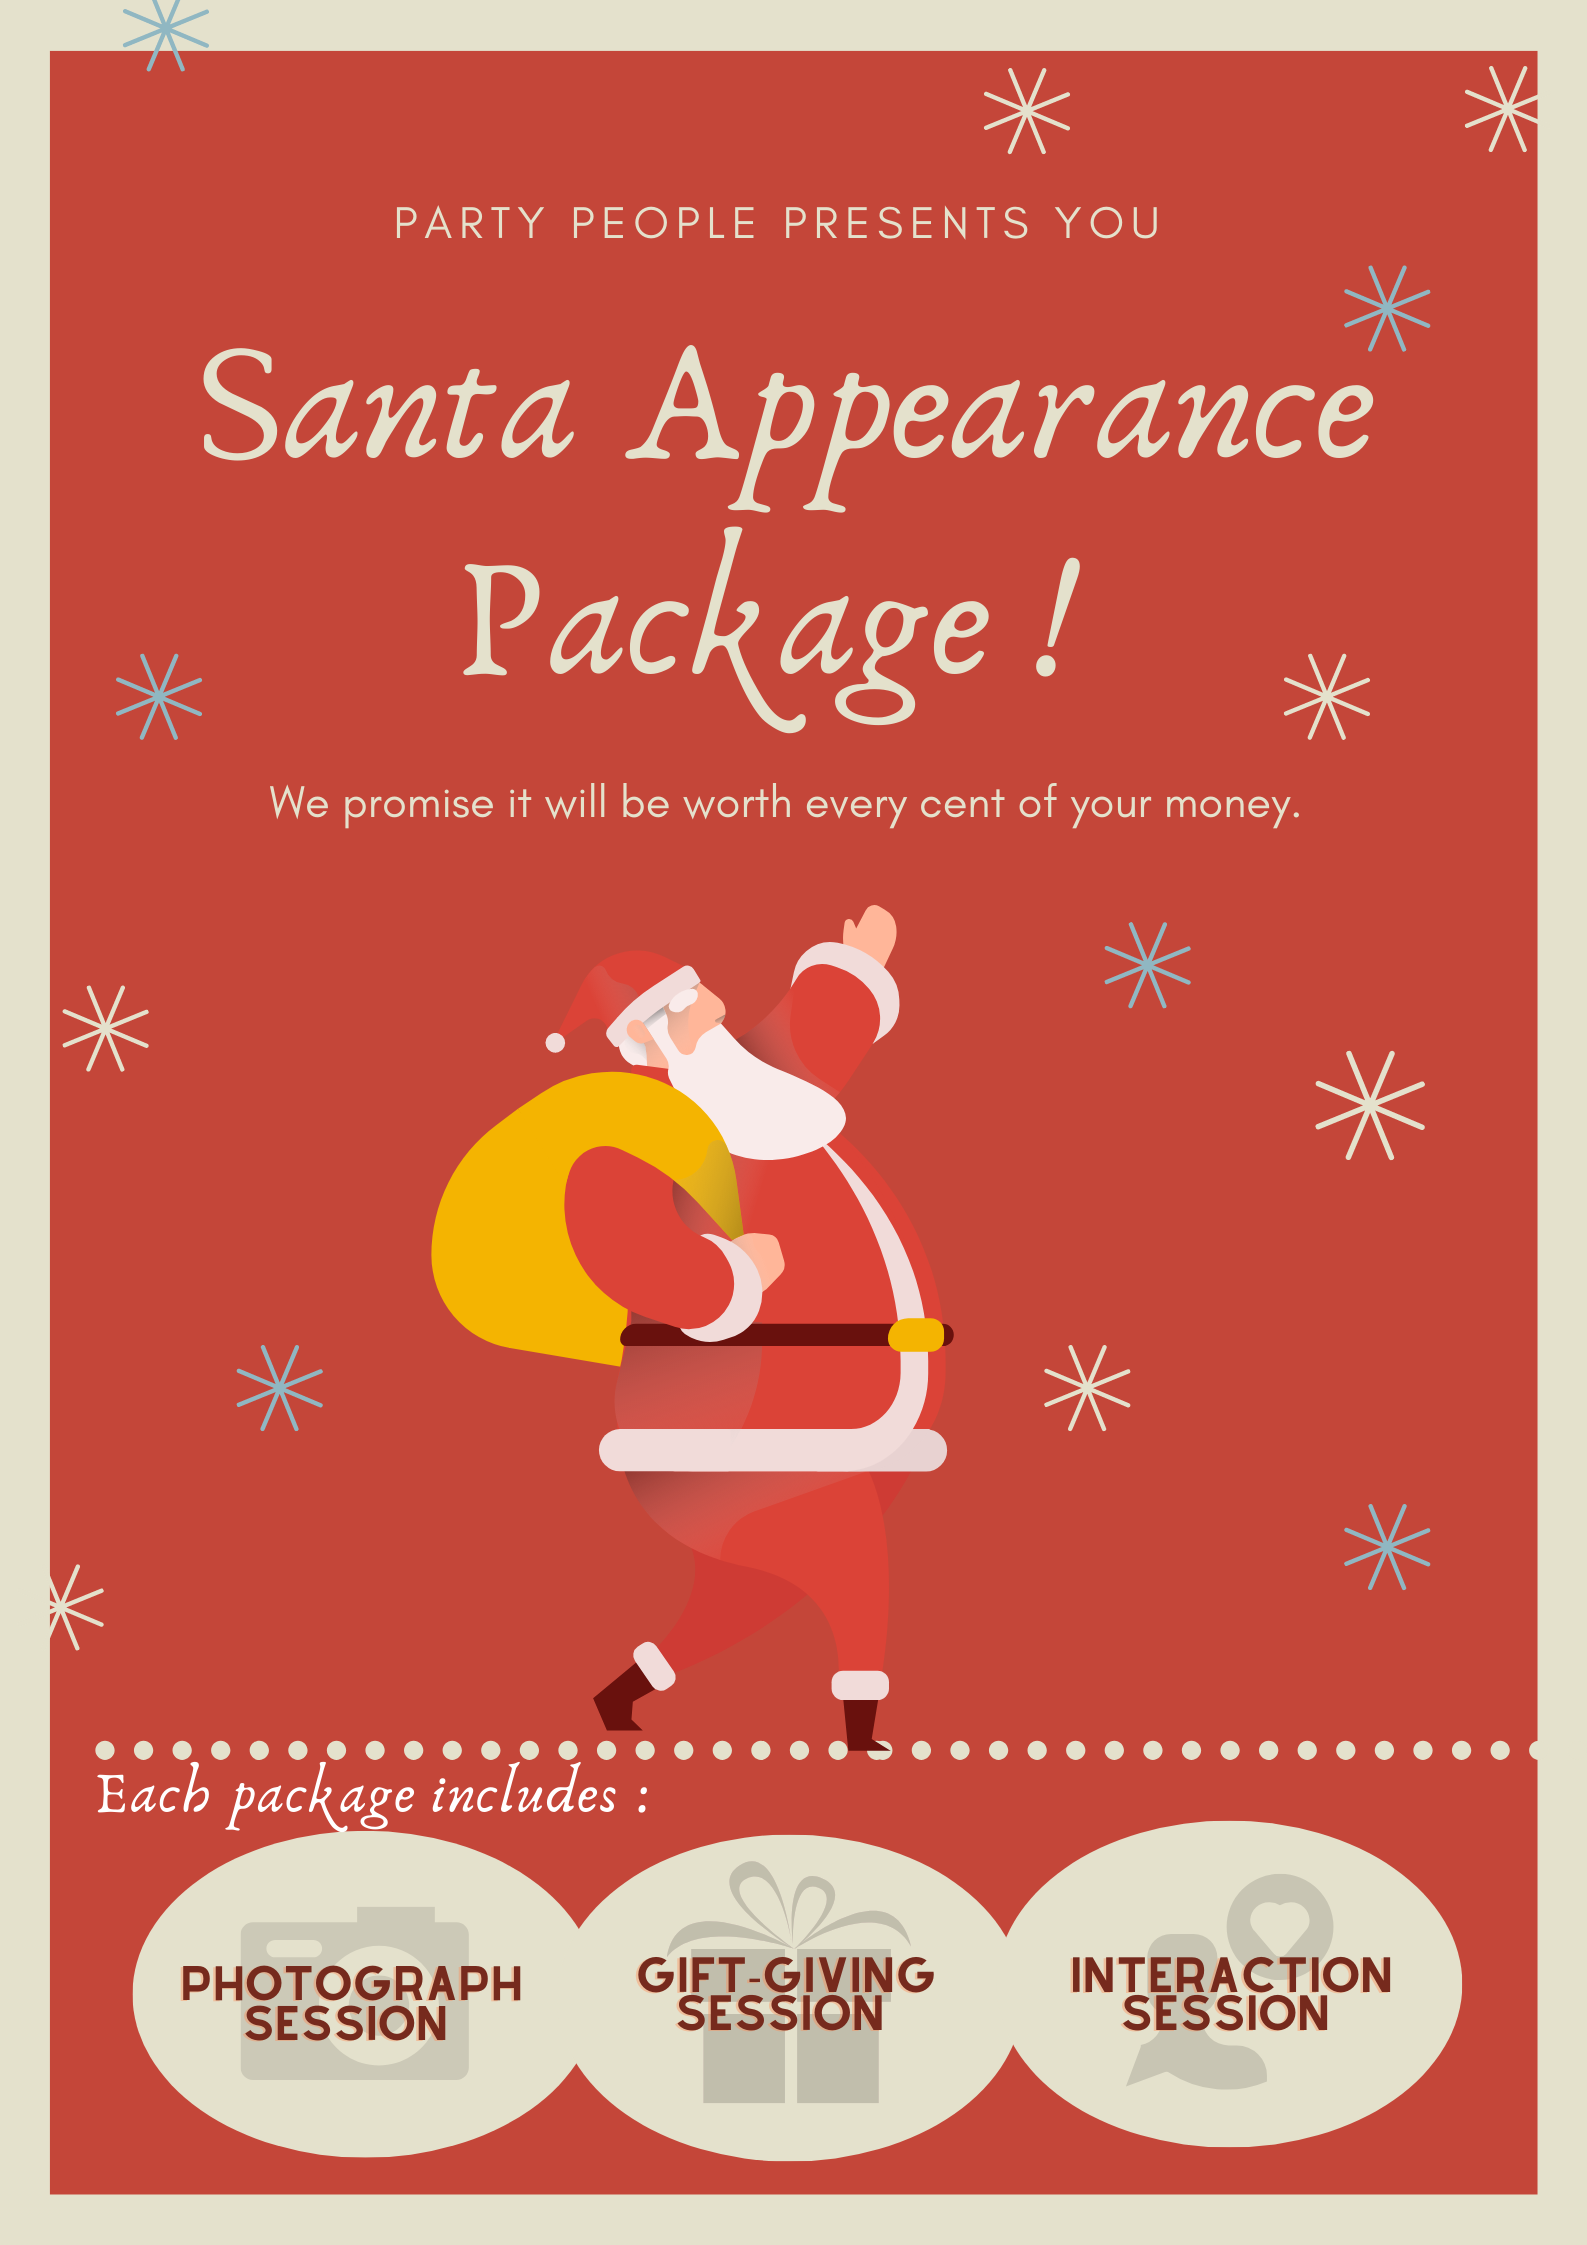 Santa Claus Appearance for Hire